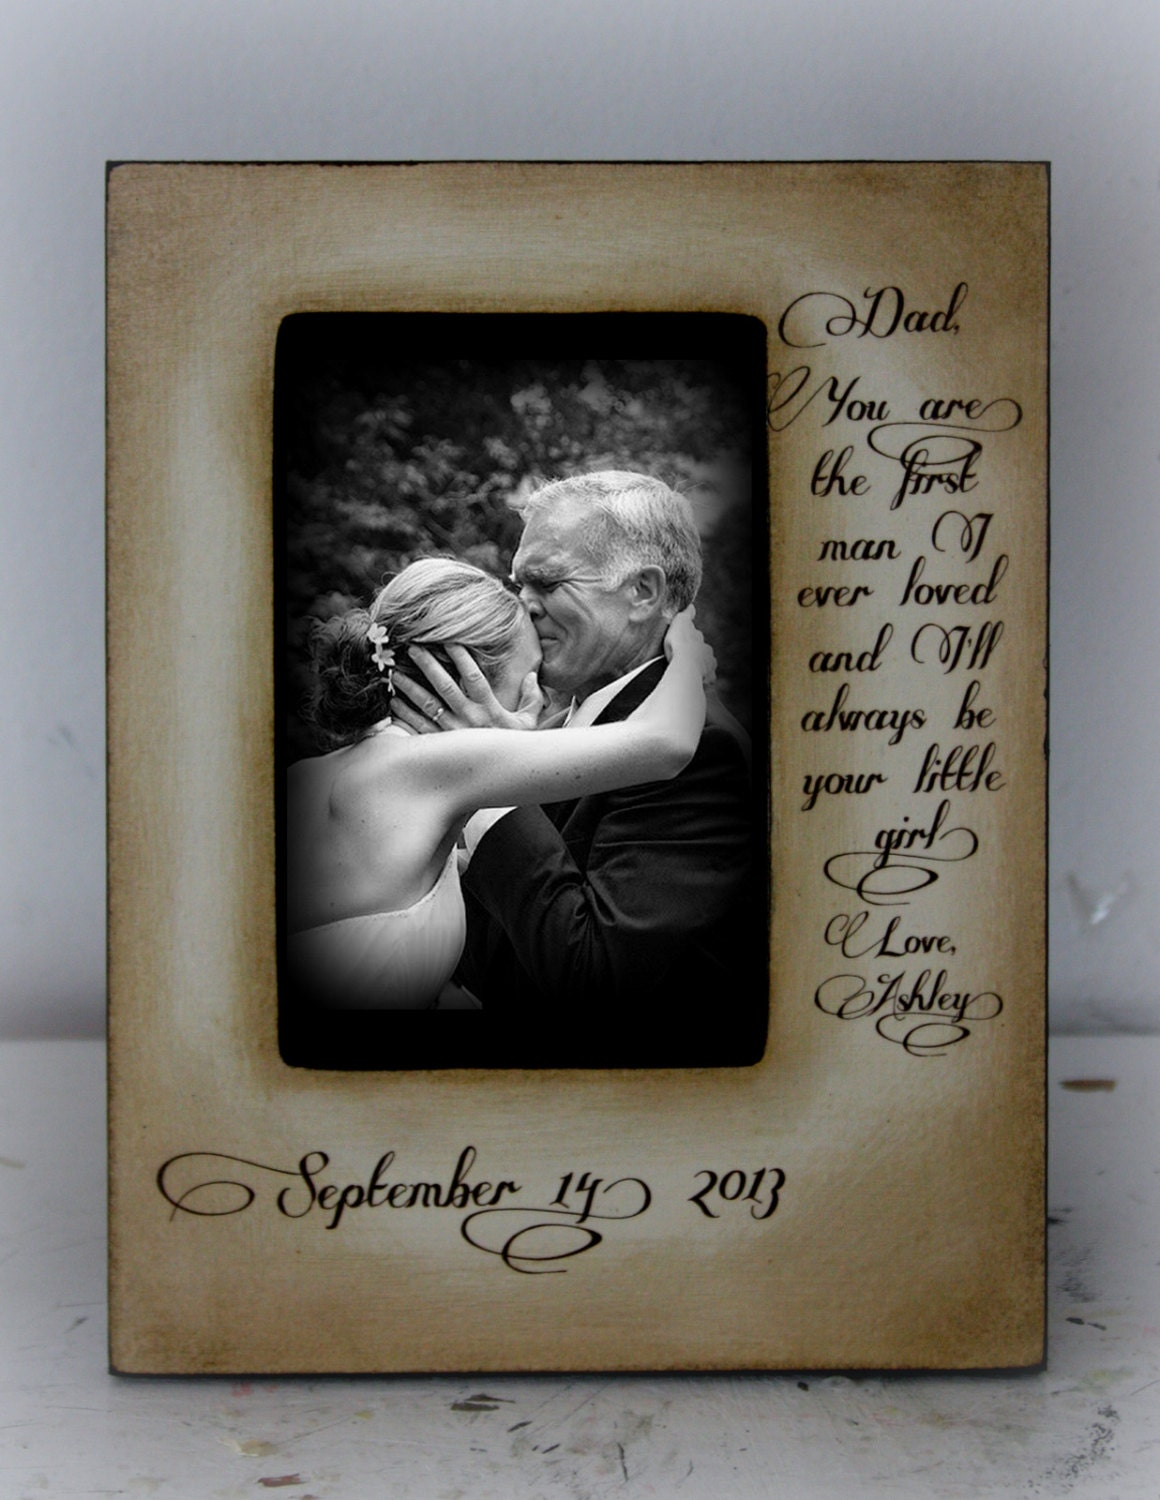 Father Daughter Wedding Frame Bride First man I ever loved